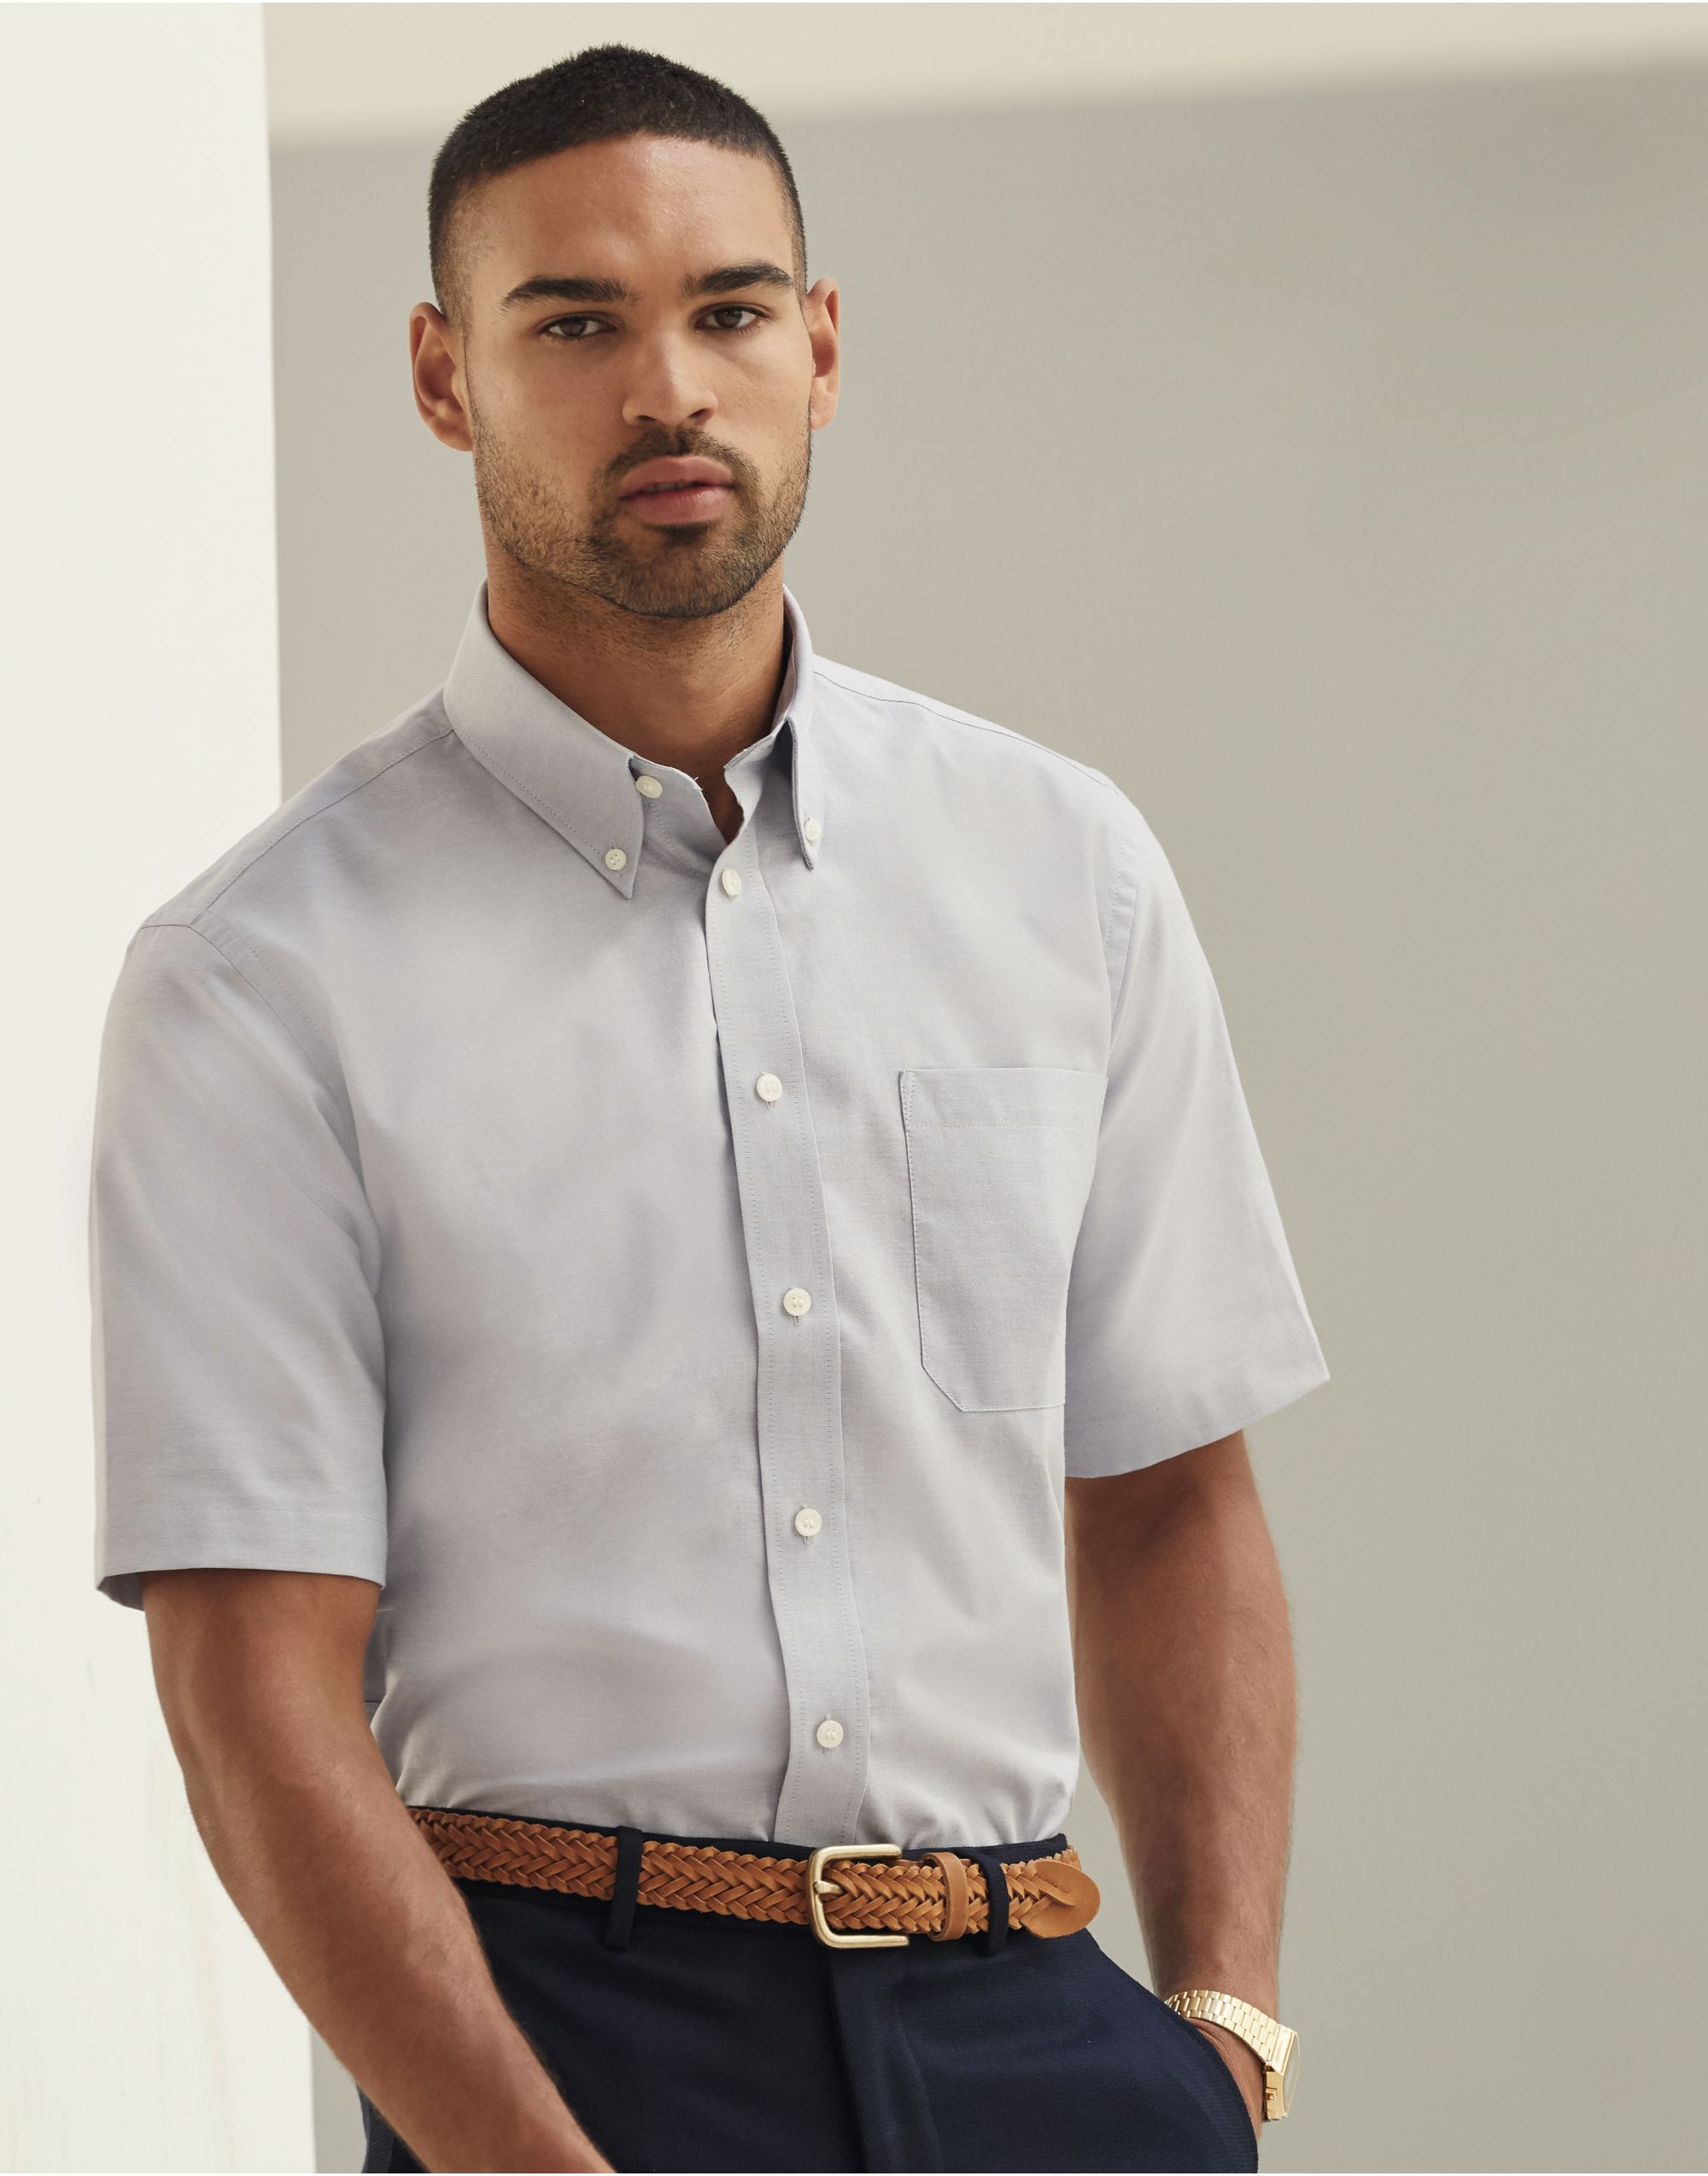 Fruit Of The Loom Men's Short Sleeve Oxford Shirt